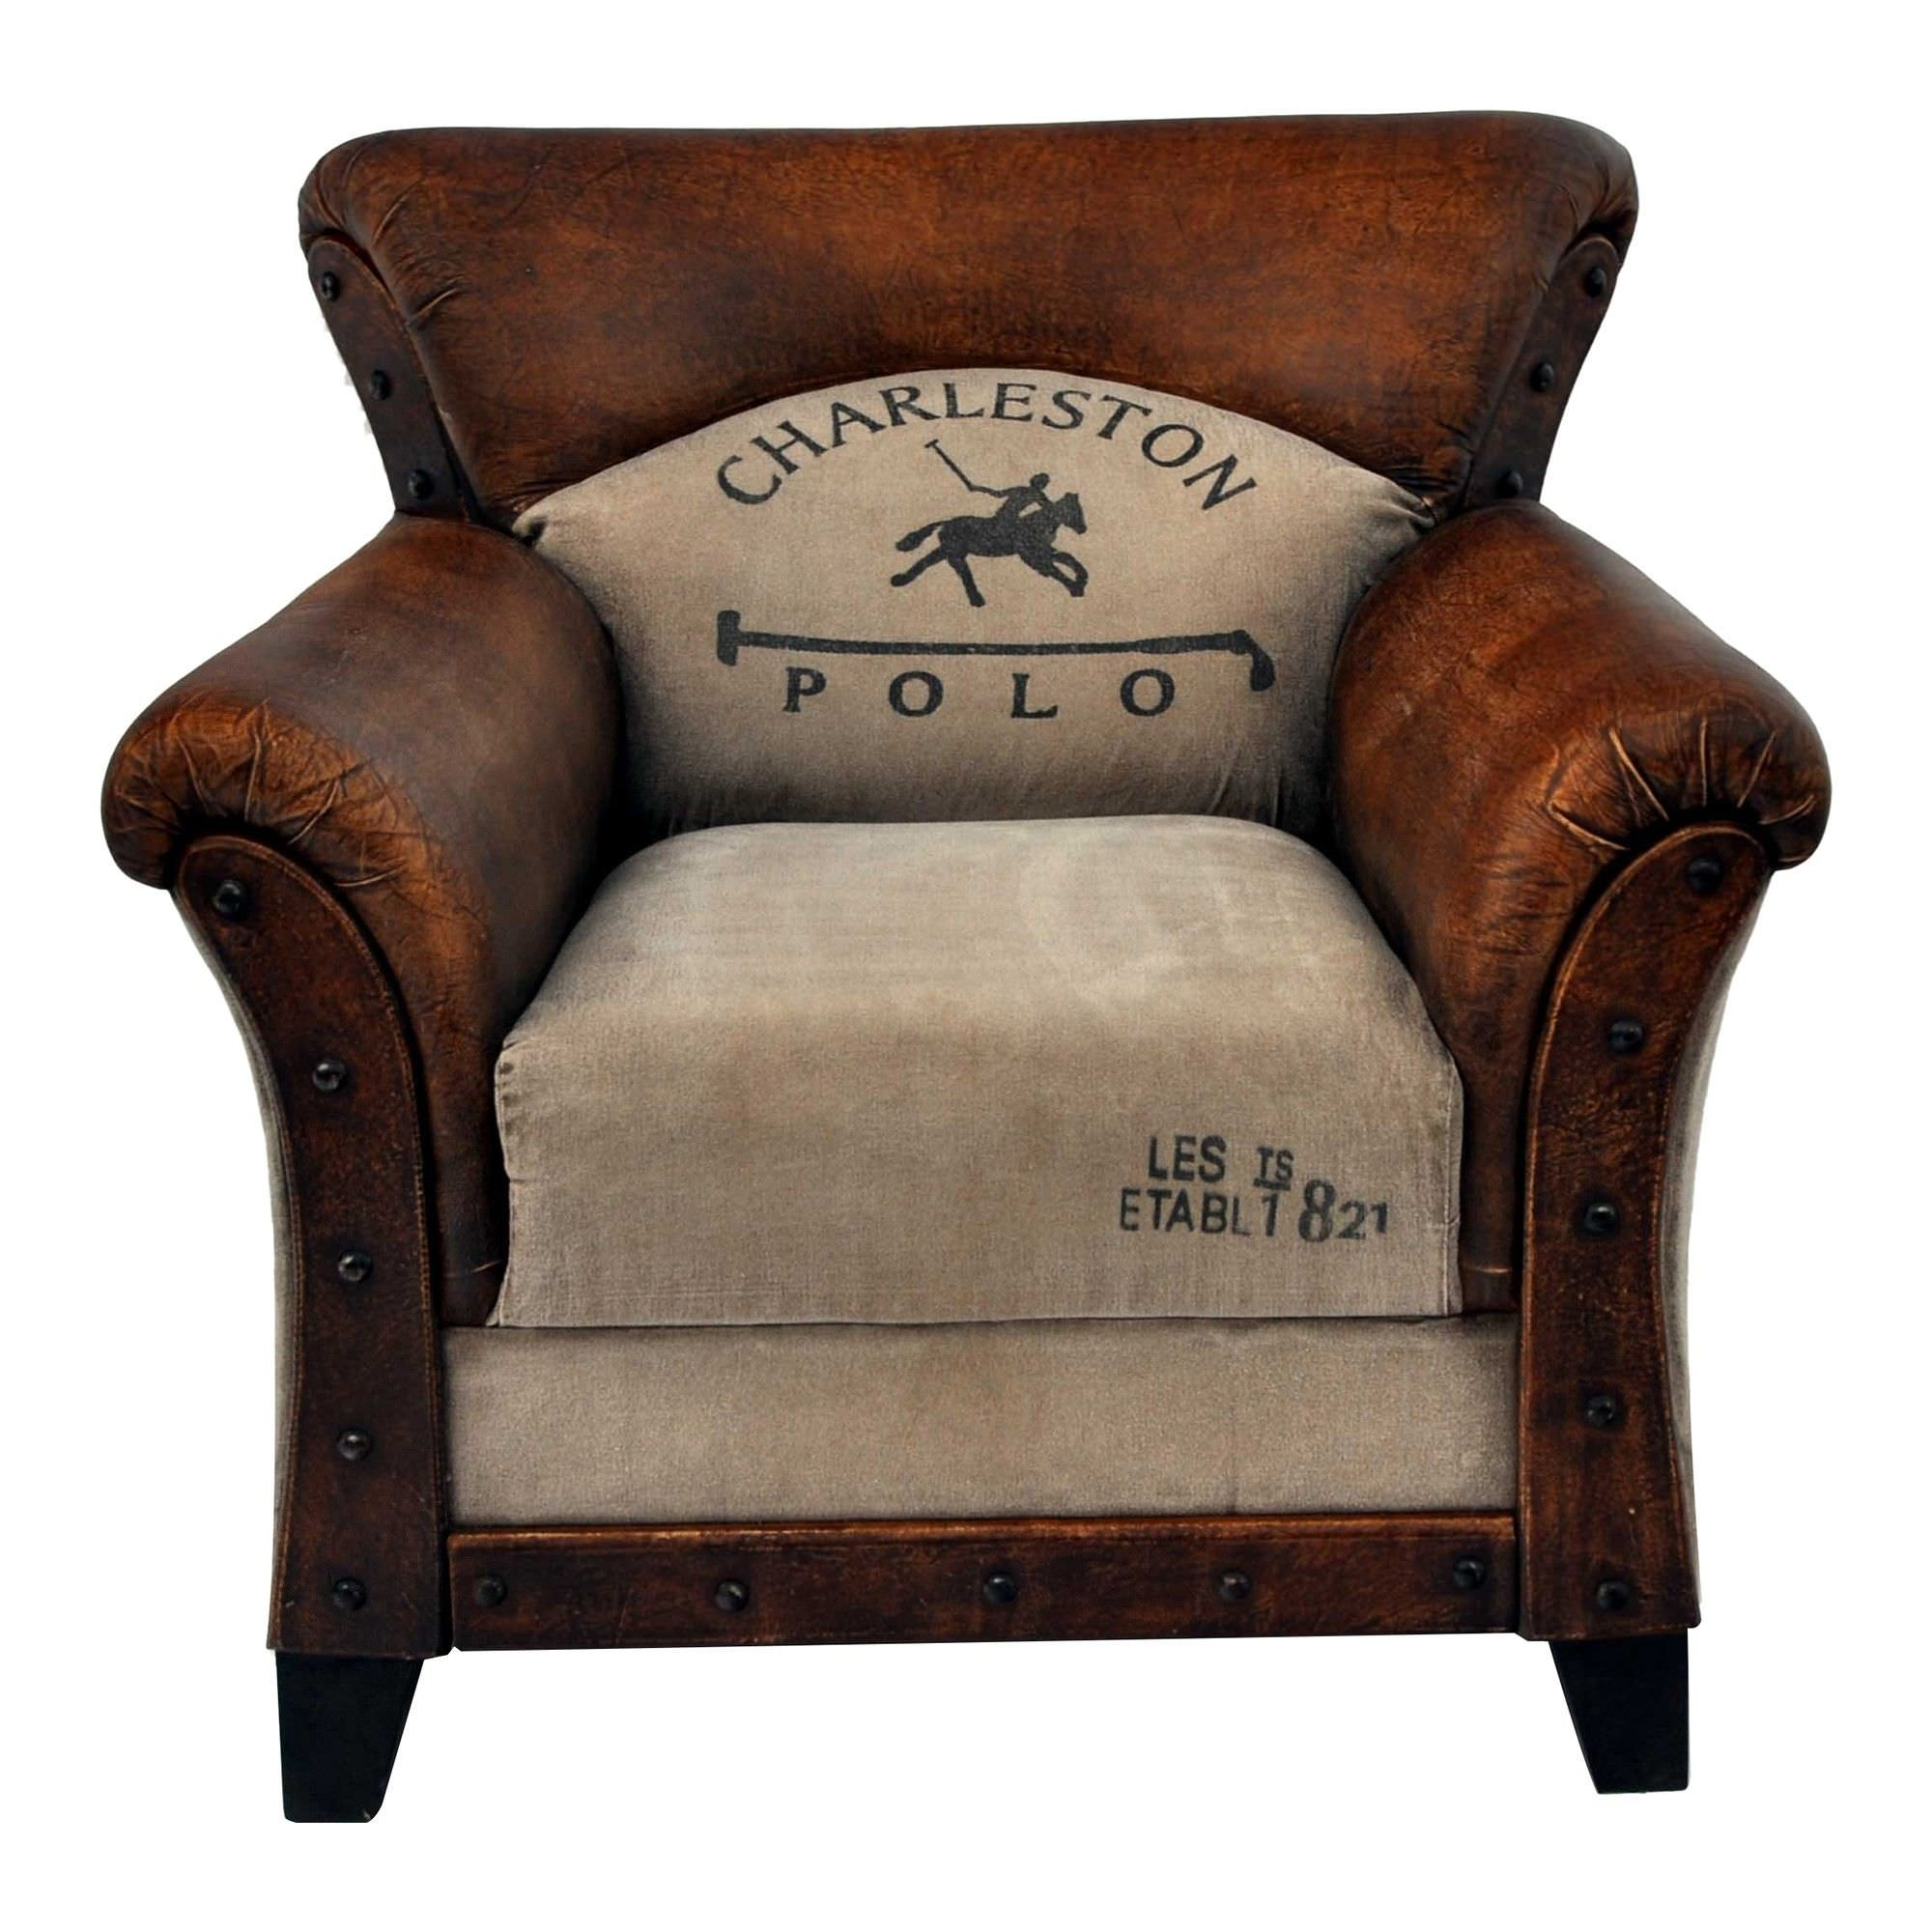 Charieston Polo Upcycled Canvas and Leather Upholstered Armchair